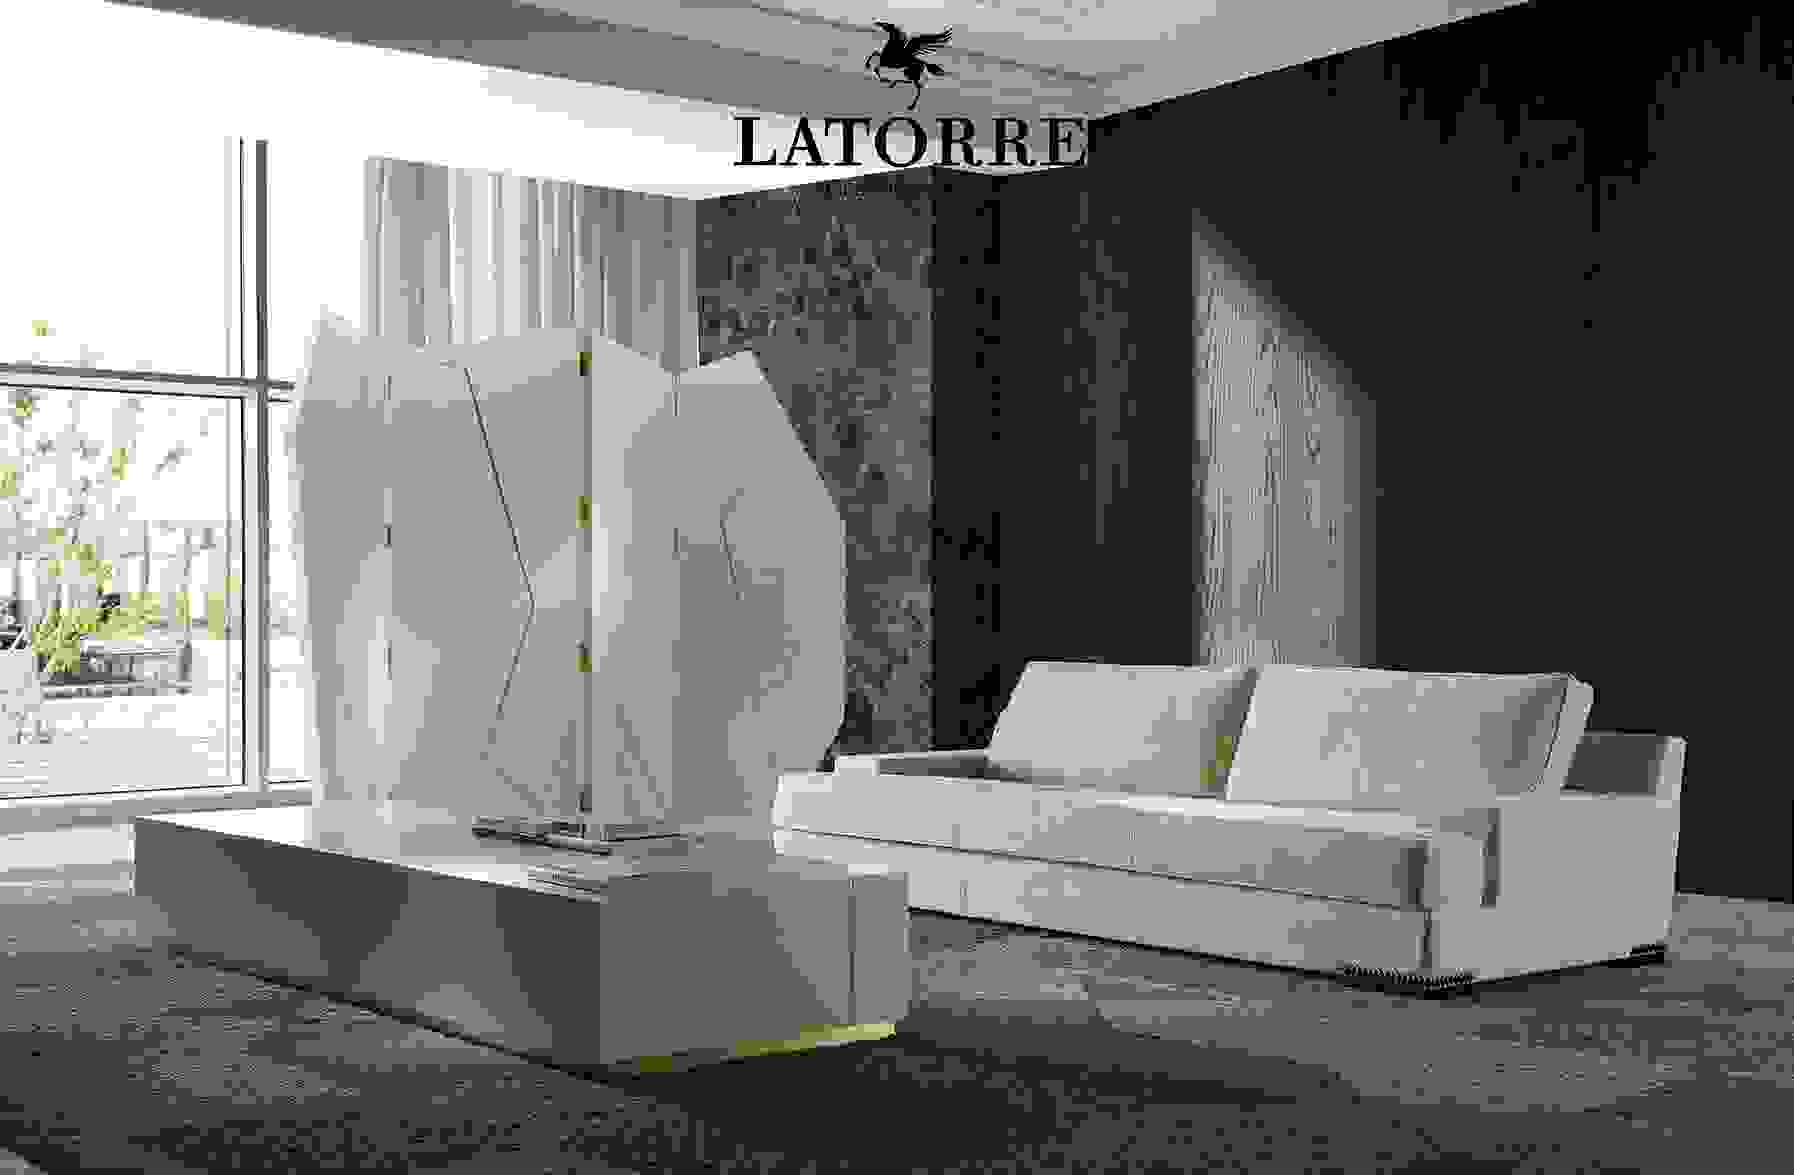 latorre-Four Seasons sofa & Cambon coffe table and screen.jpg